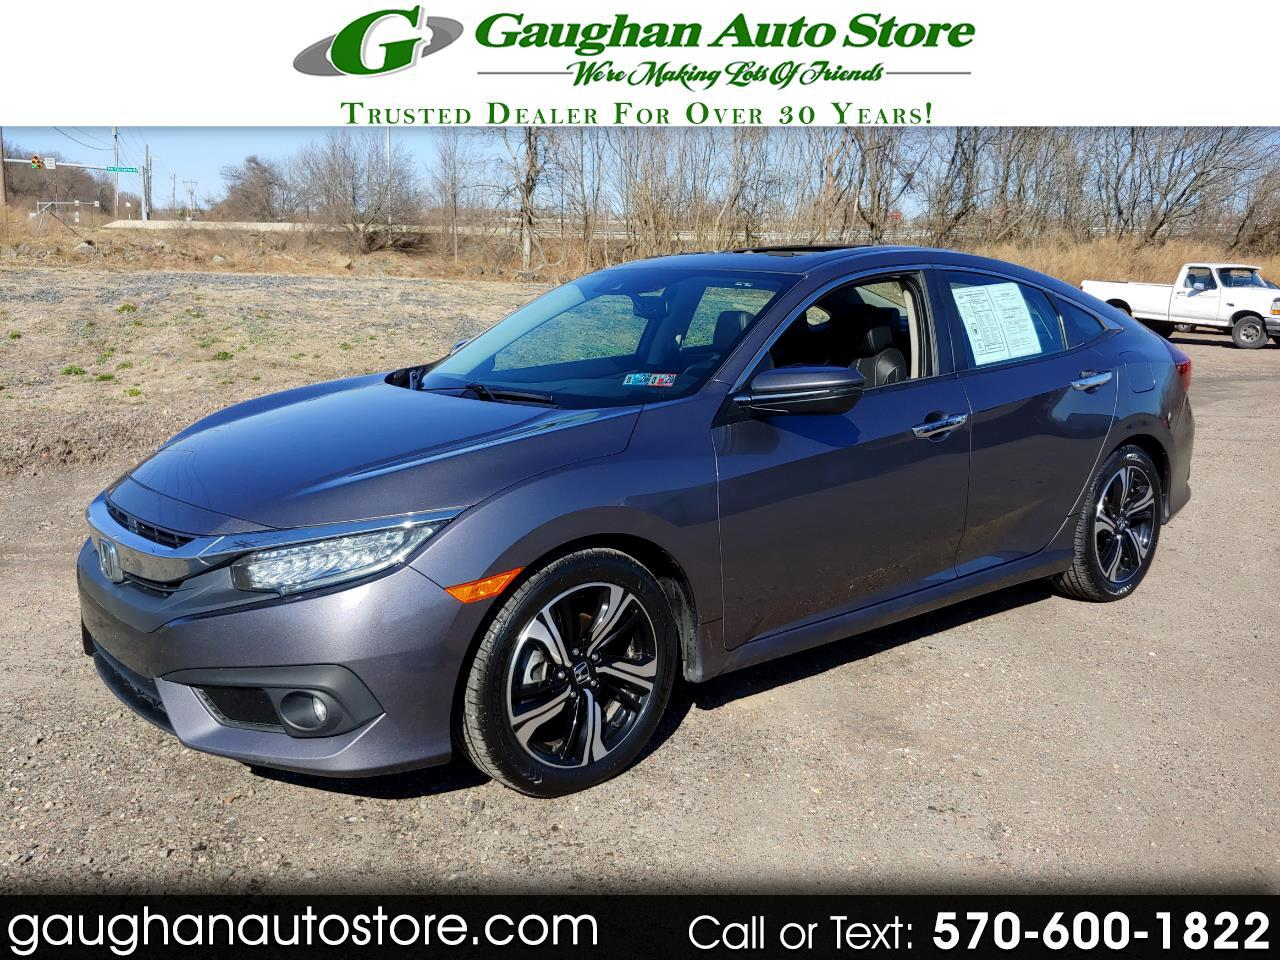 2016 Honda Civic Sedan TOURING EDITION  LEATHER/CAMERA/NAVI